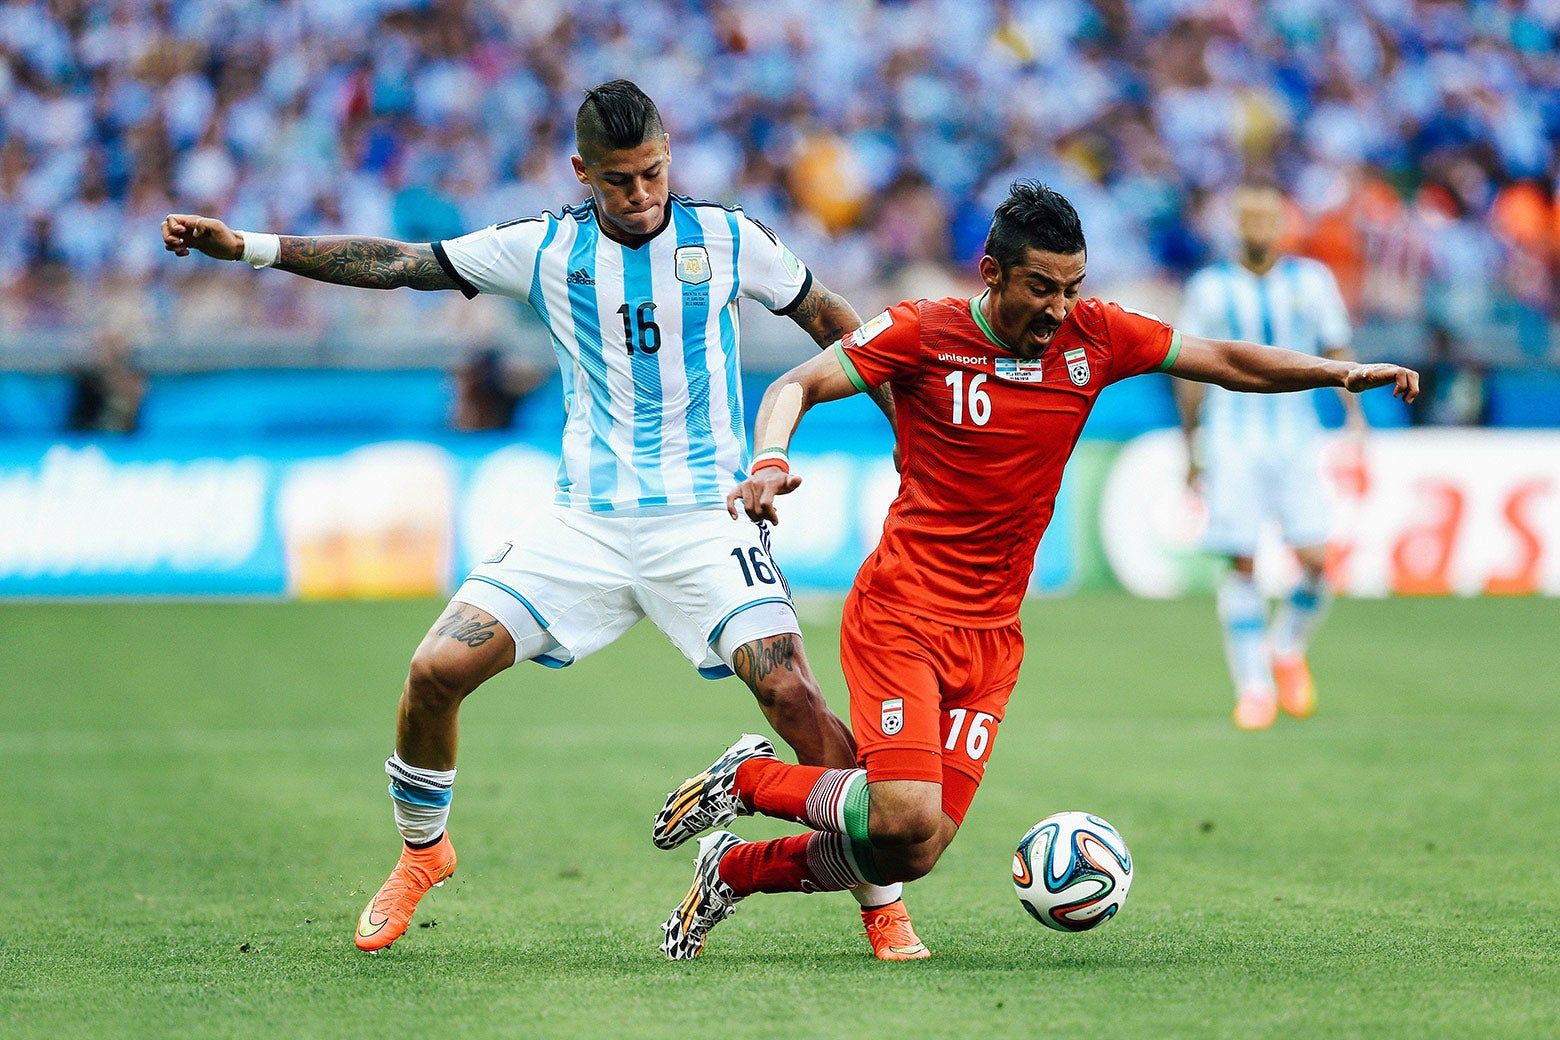 "Marcos Rojo's ""pride"" and ""glory"" tattoos are seen on his thighs as he challenges another player for the ball."